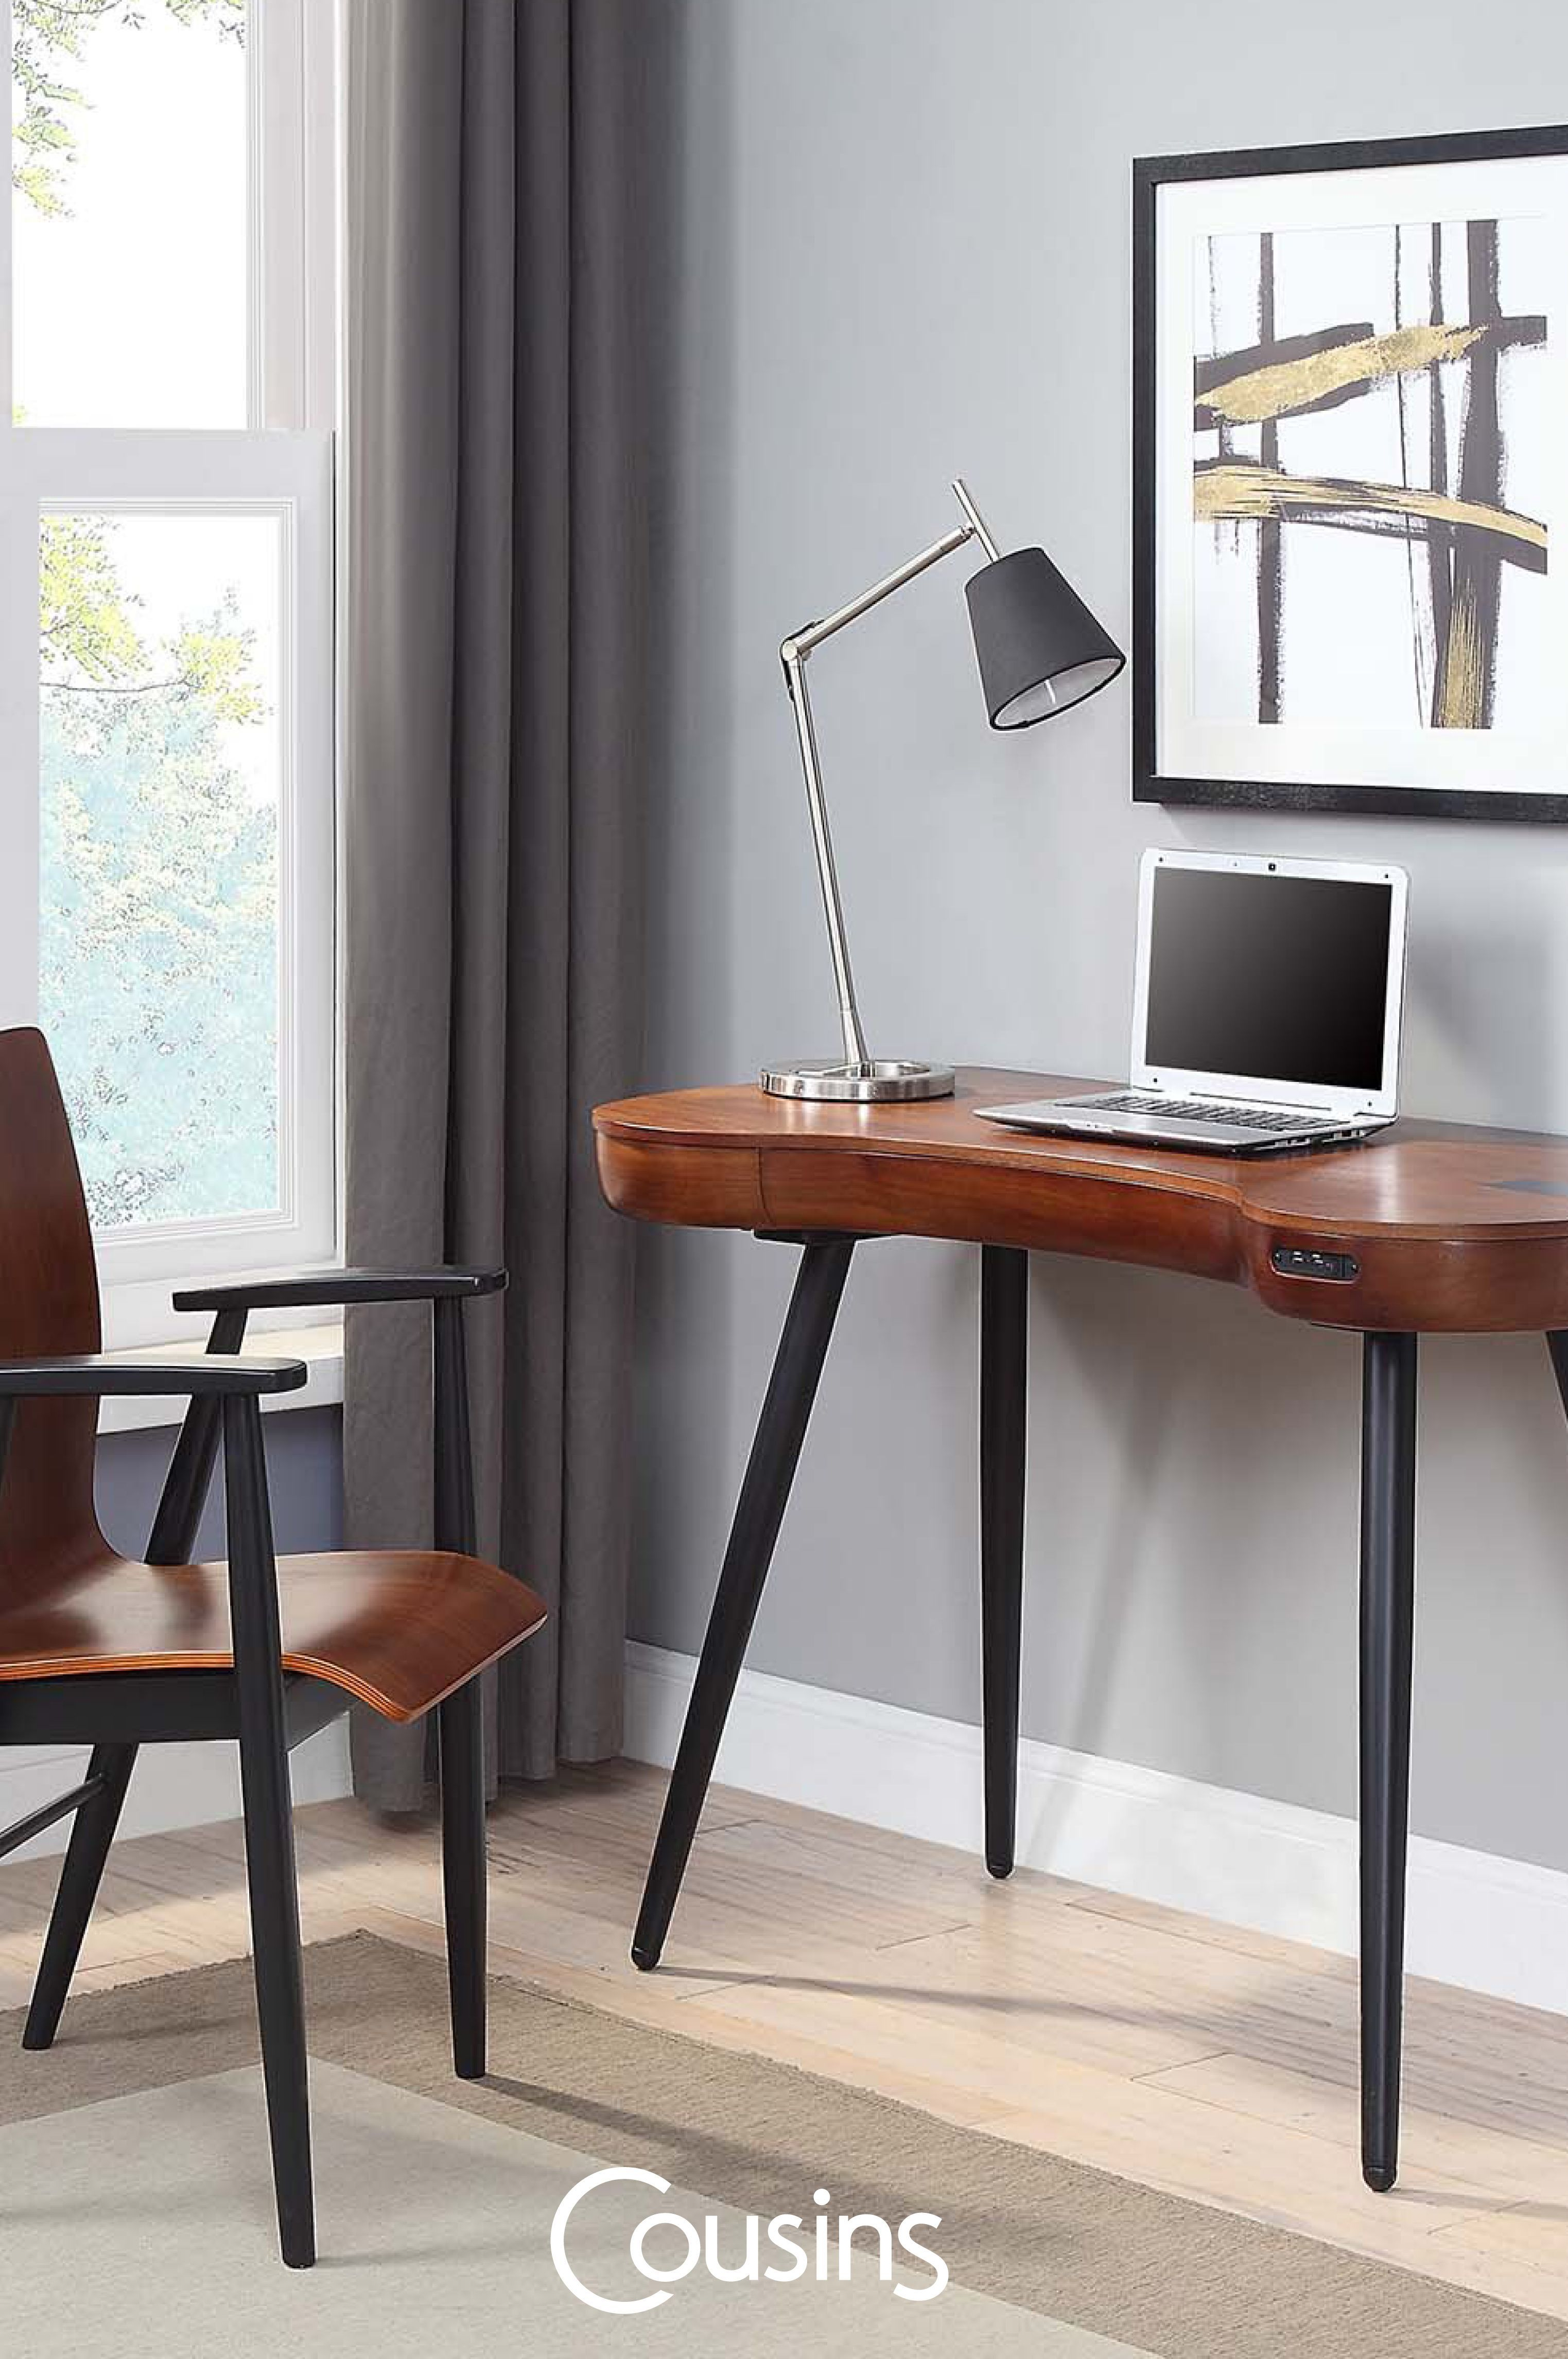 Introducing our brand new 'Apple' range..   Both home office furniture and occasional furniture avai... - #Apple #brand #furniture #introducing #occasional #office #range - #officefurniture